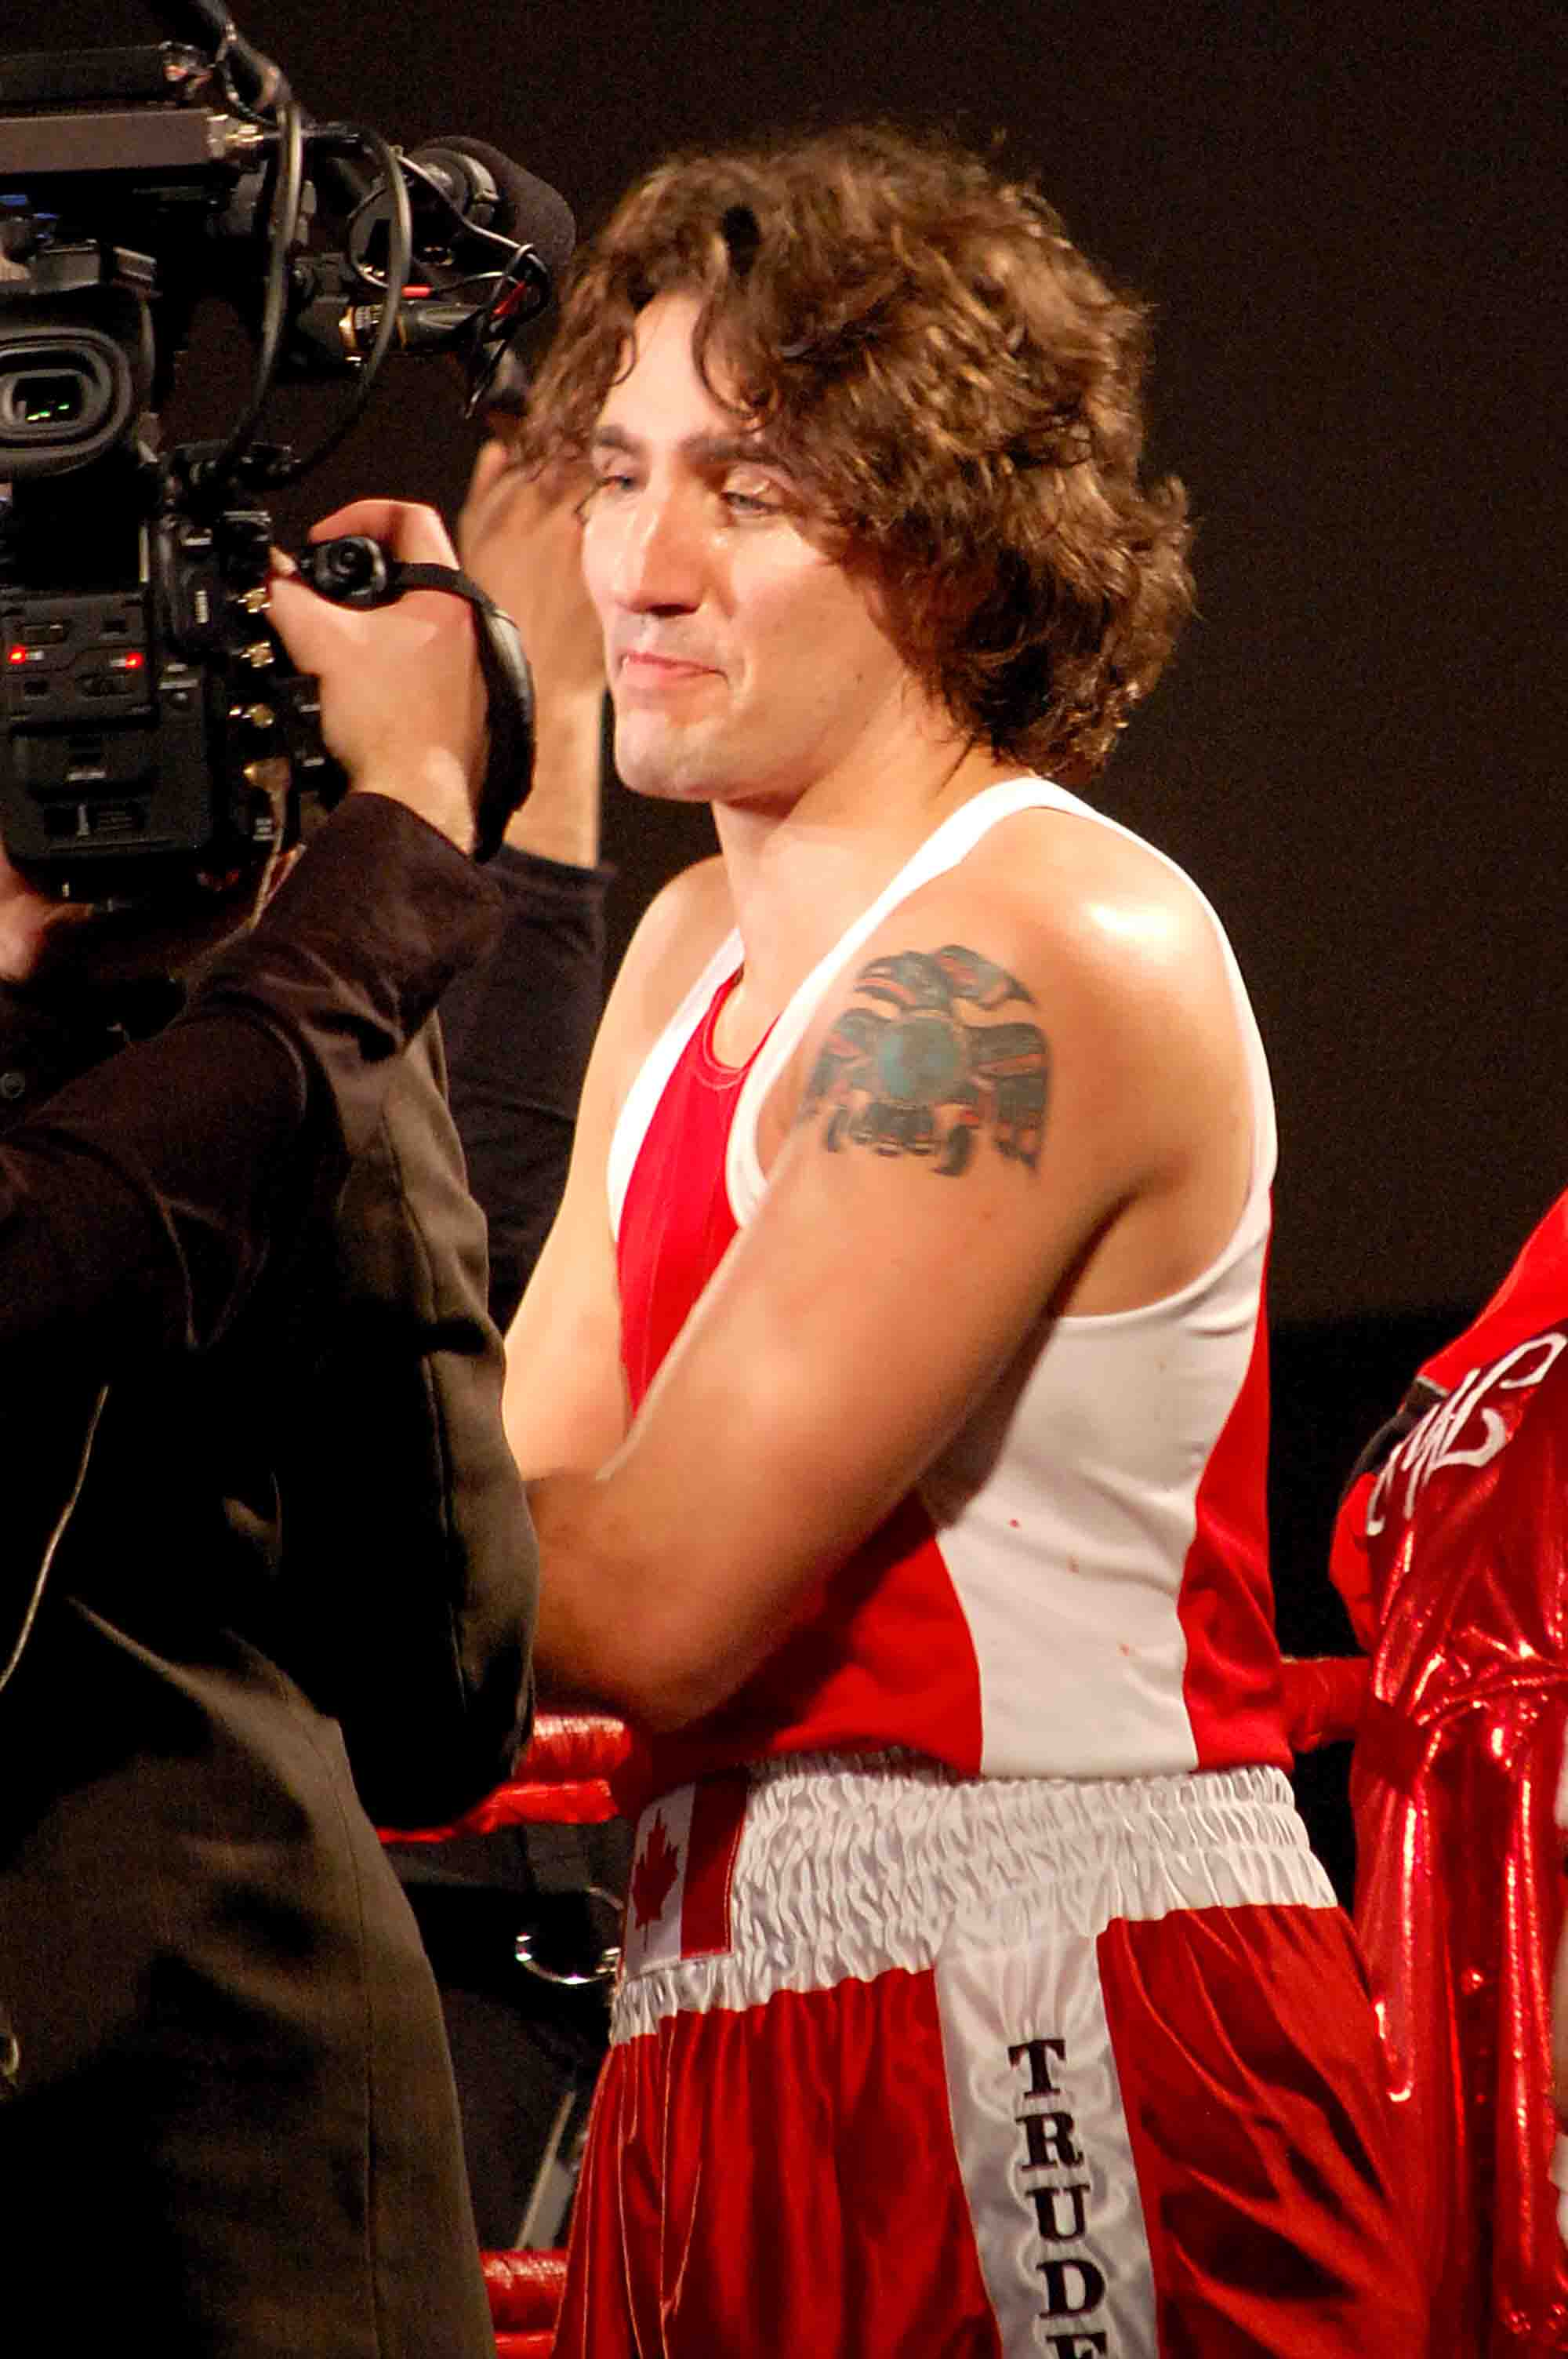 Justin Trudeau was victorious in the match against former Senator Patrick Brazeau.